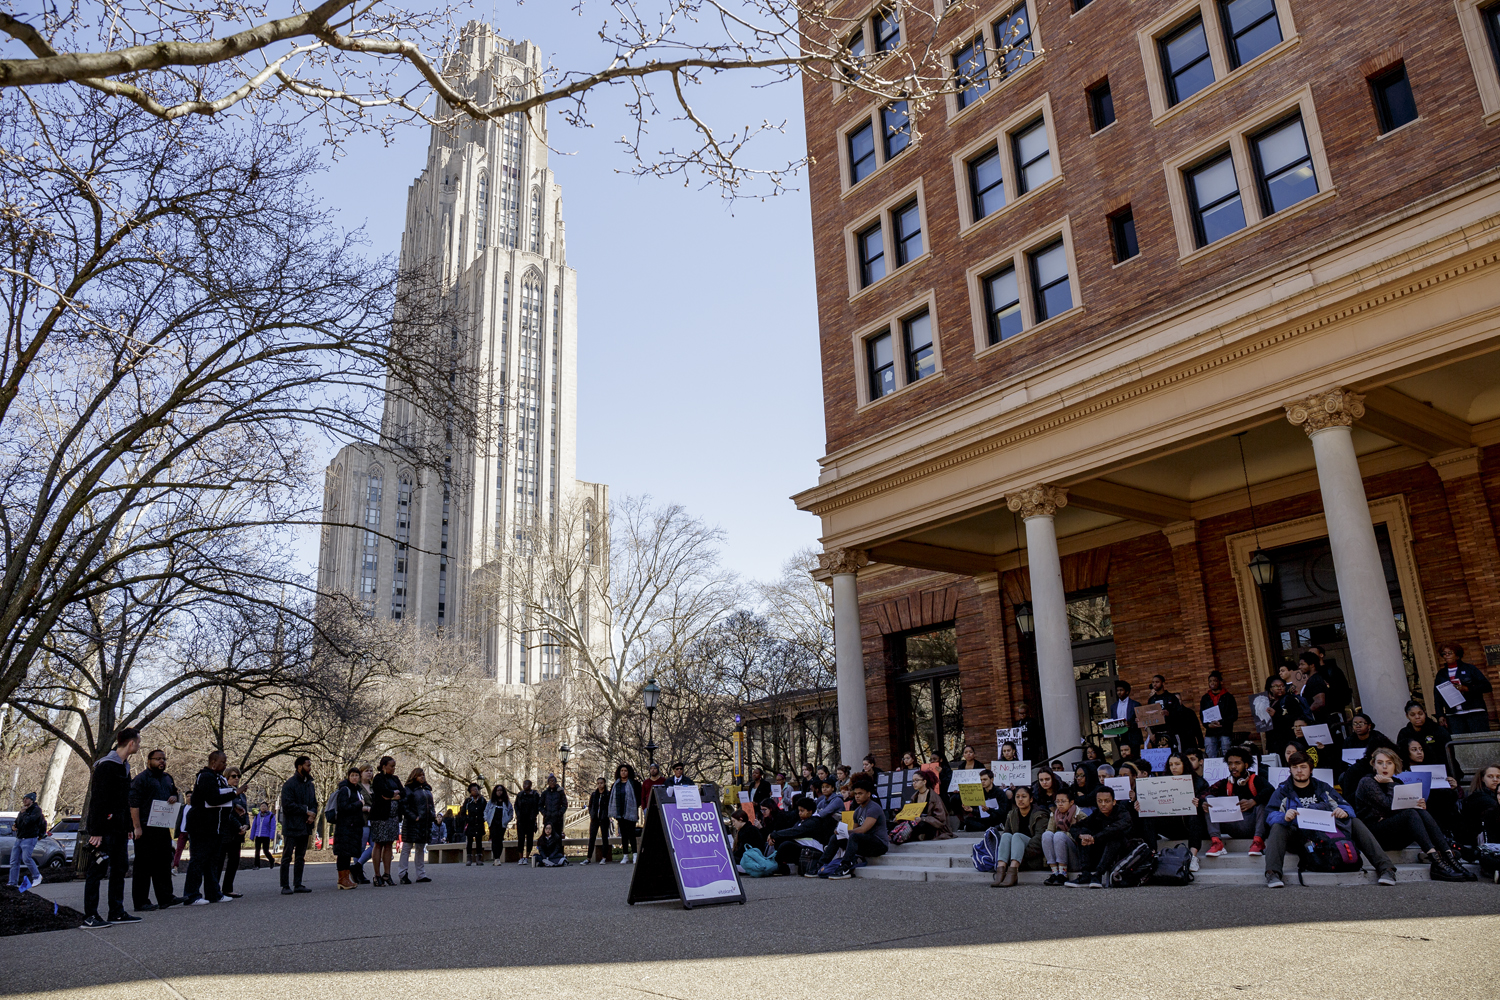 Around 120 students gathered outside the William Pitt Union on Wednesday afternoon for a silent and peaceful die-in demonstration, which lasted around 40 minutes.